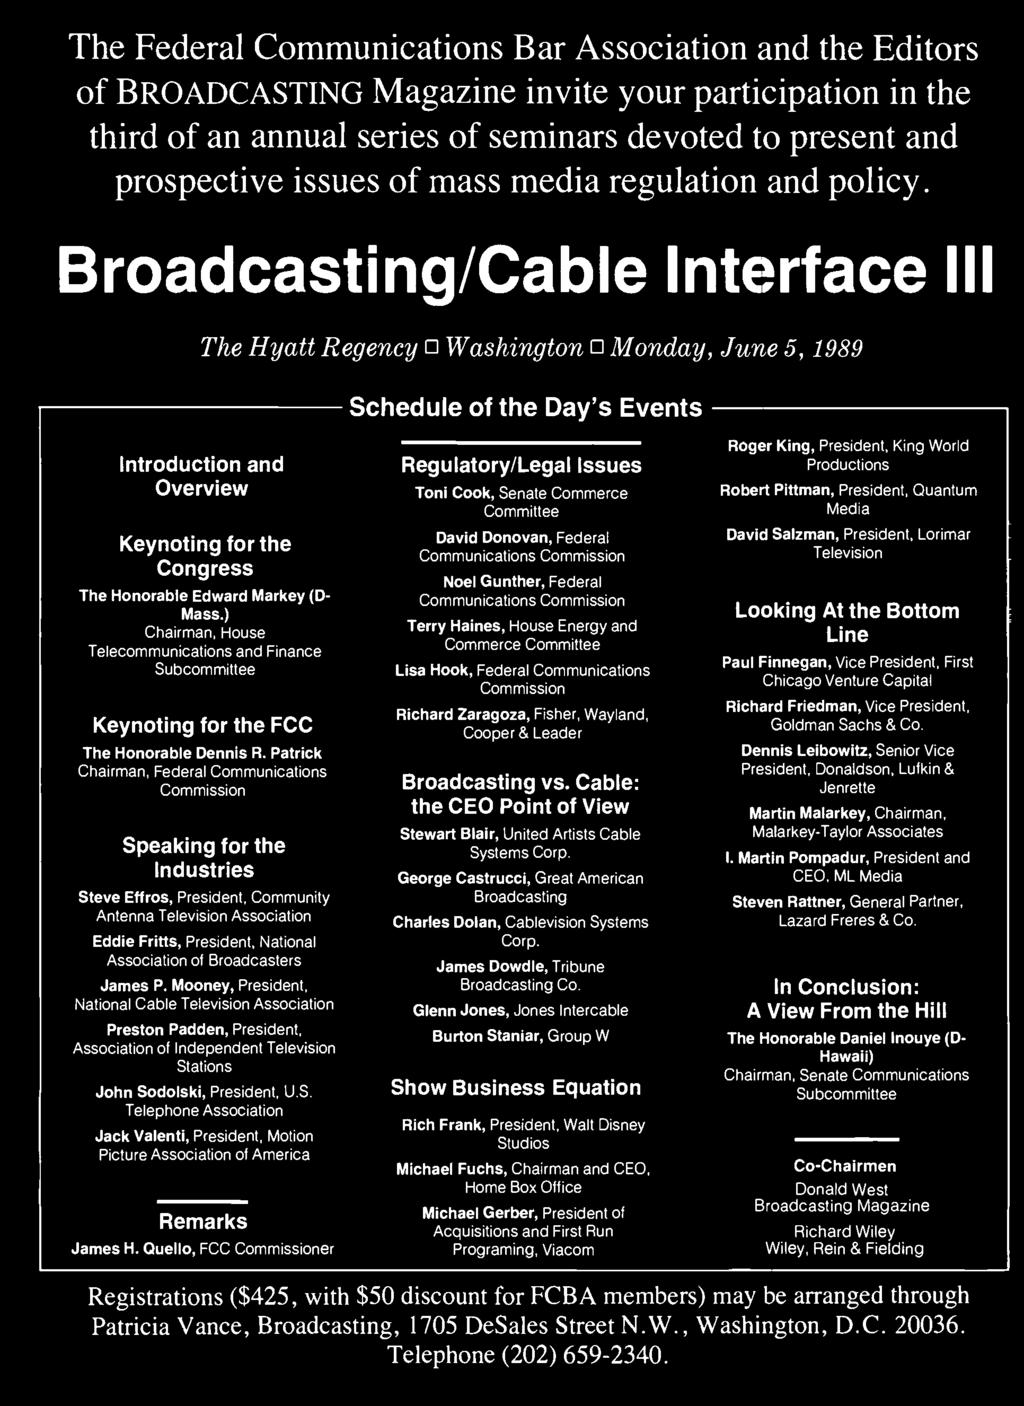 Broadcasting /Cable Interface III The Hyatt Regency Washington Monday, June 5, 1989 Schedule of the Day's Events Introduction and Overview Keynoting for the Congress The Honorable Edward Markey (D-